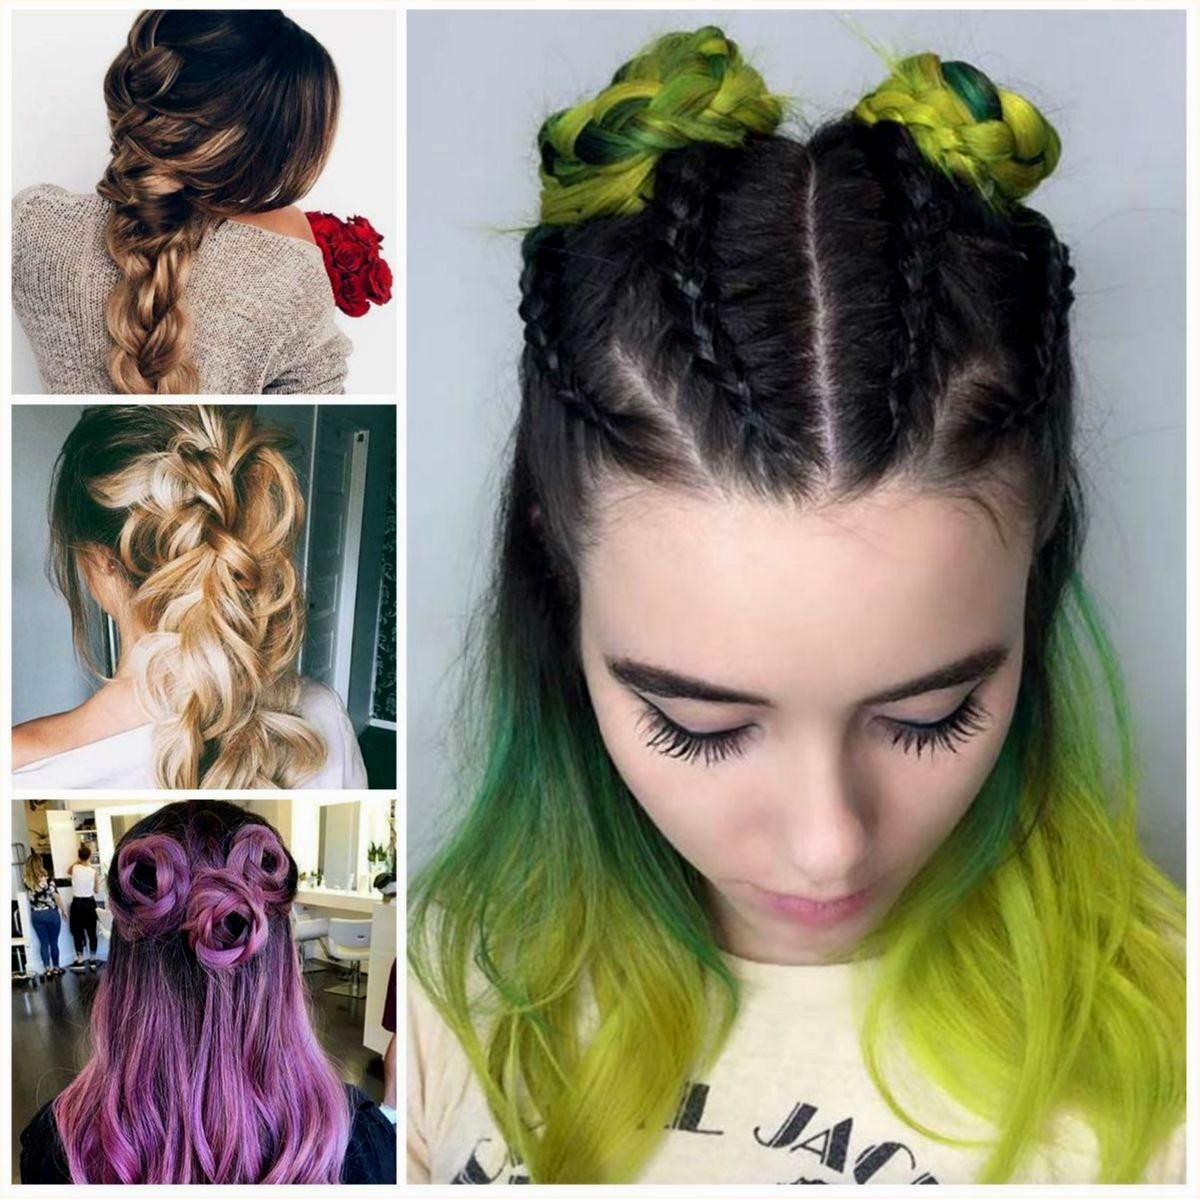 Inspirational Hairstyle Toddler Girl Concept - Awesome Hairstyle Toddler Girl Ideas